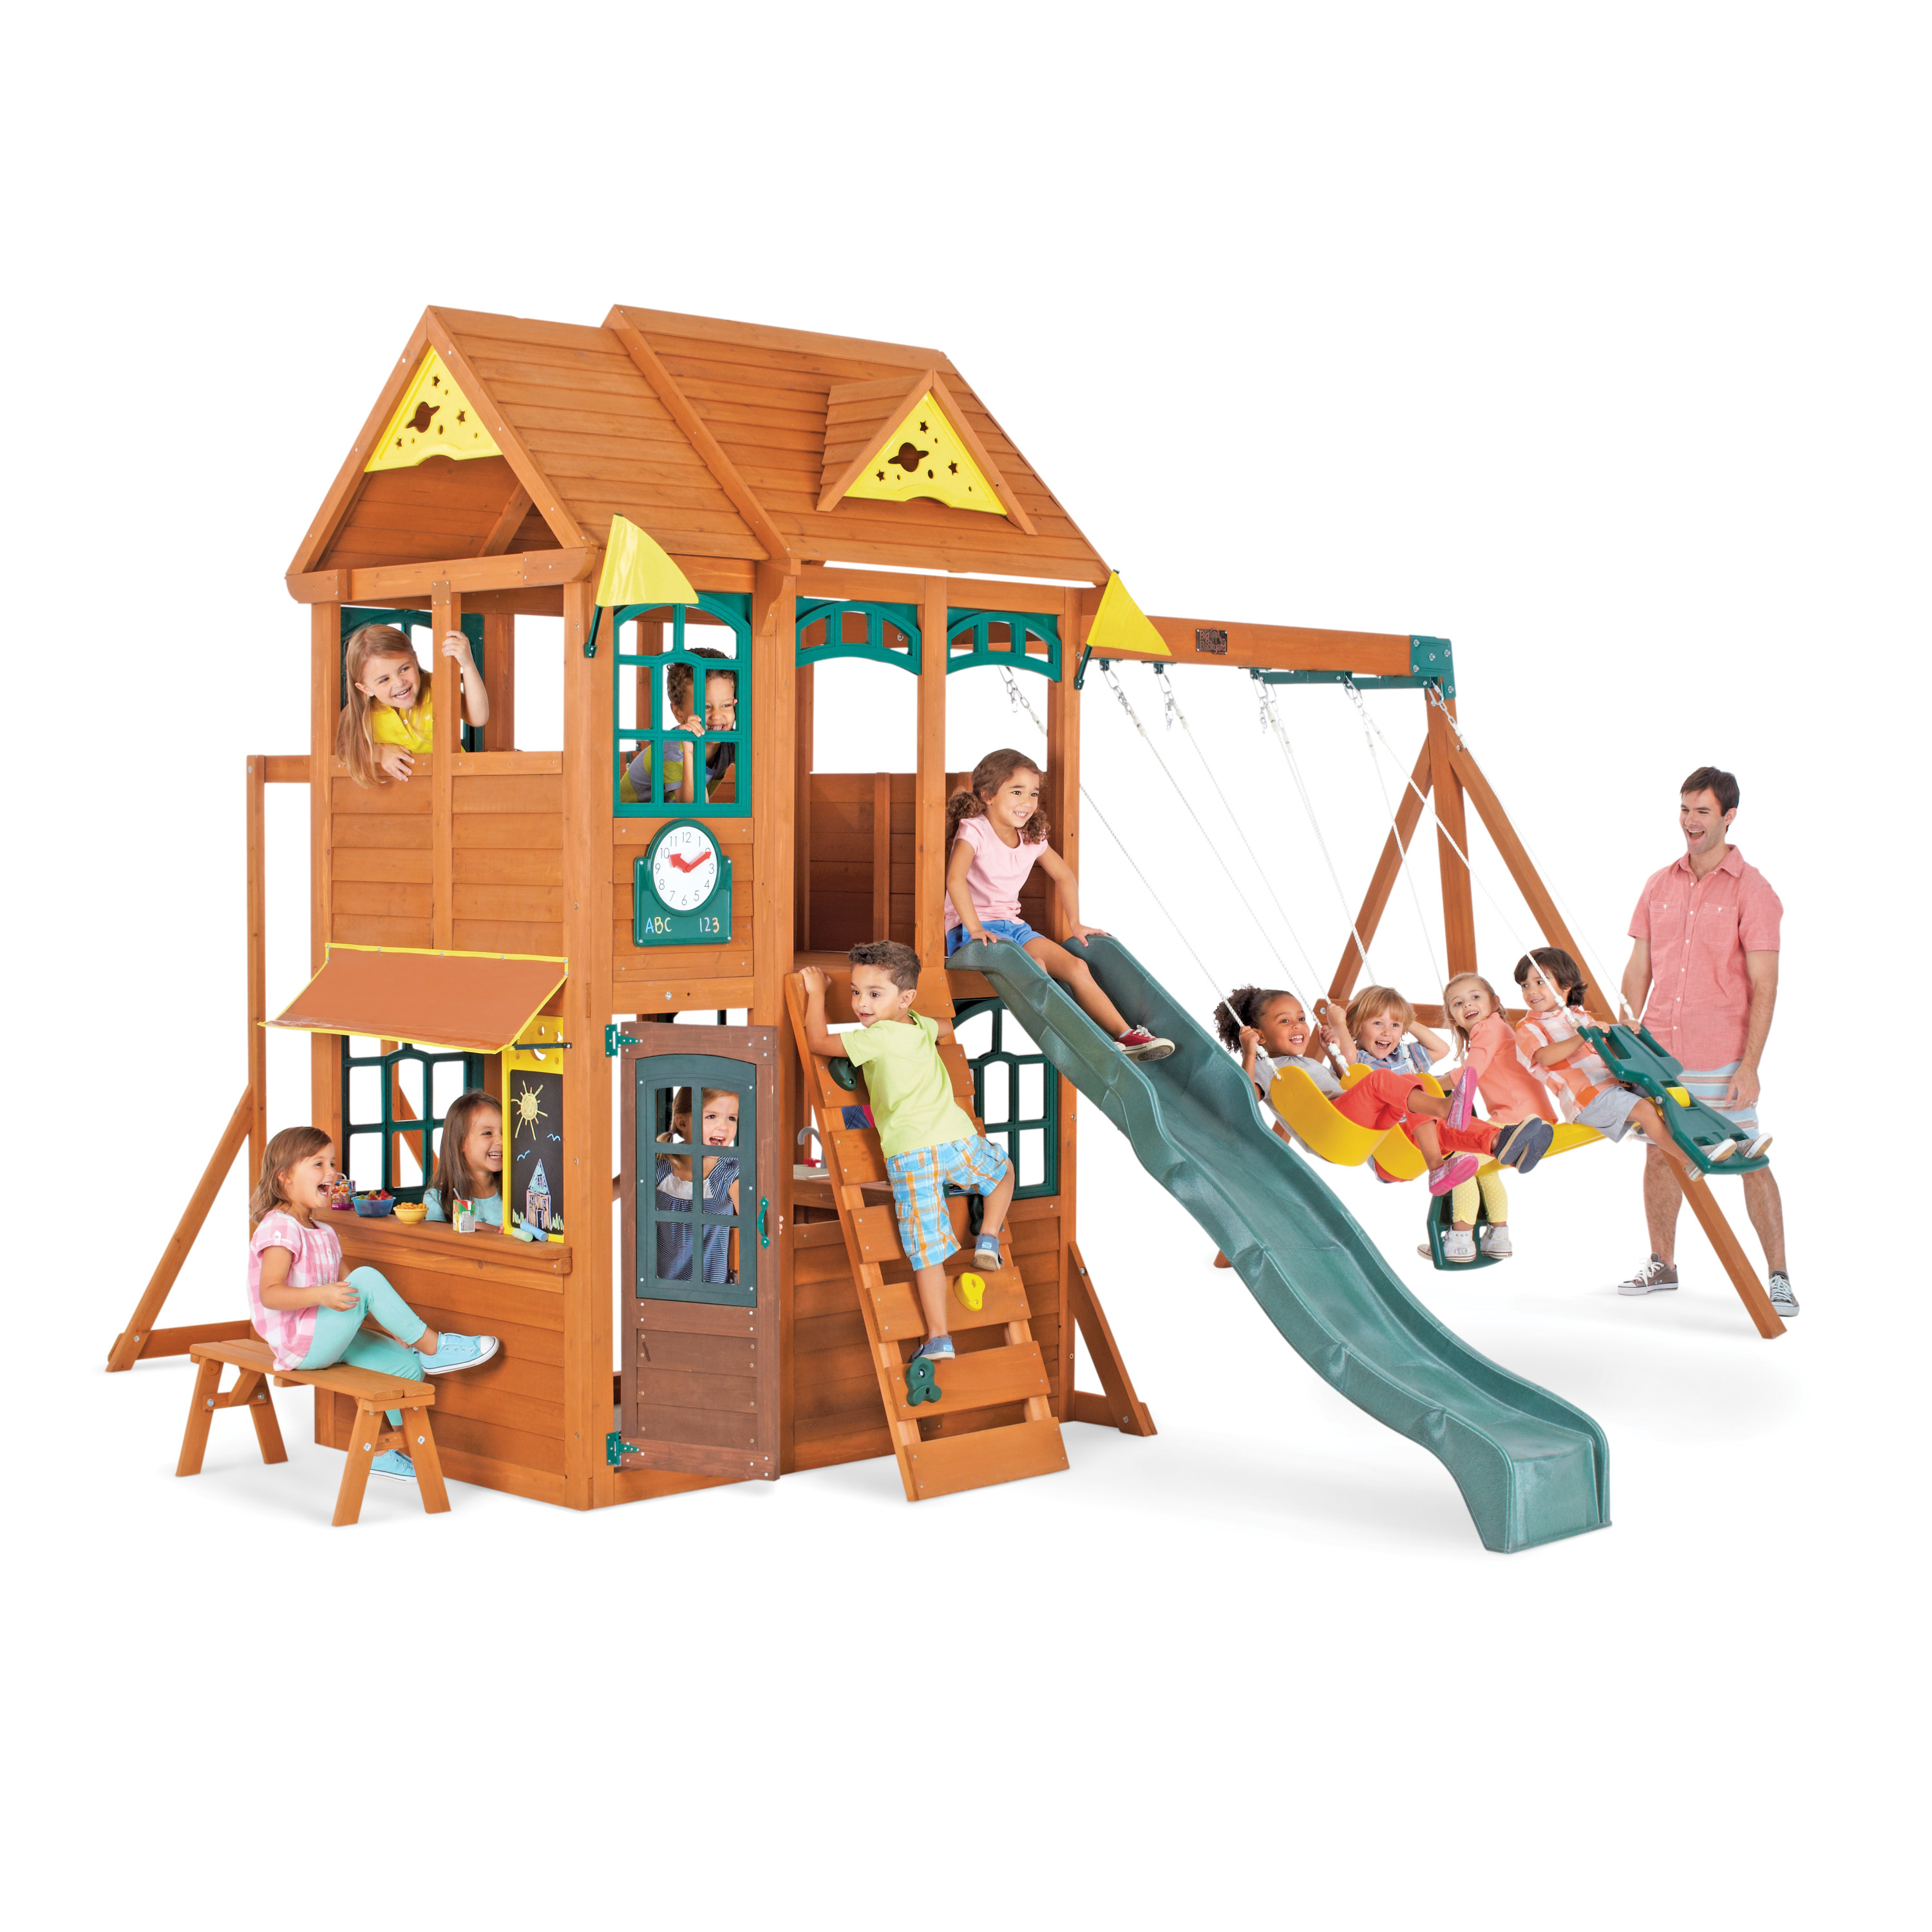 Big Backyard Meadowbrook Outdoor Wooden Playset by KidKraft